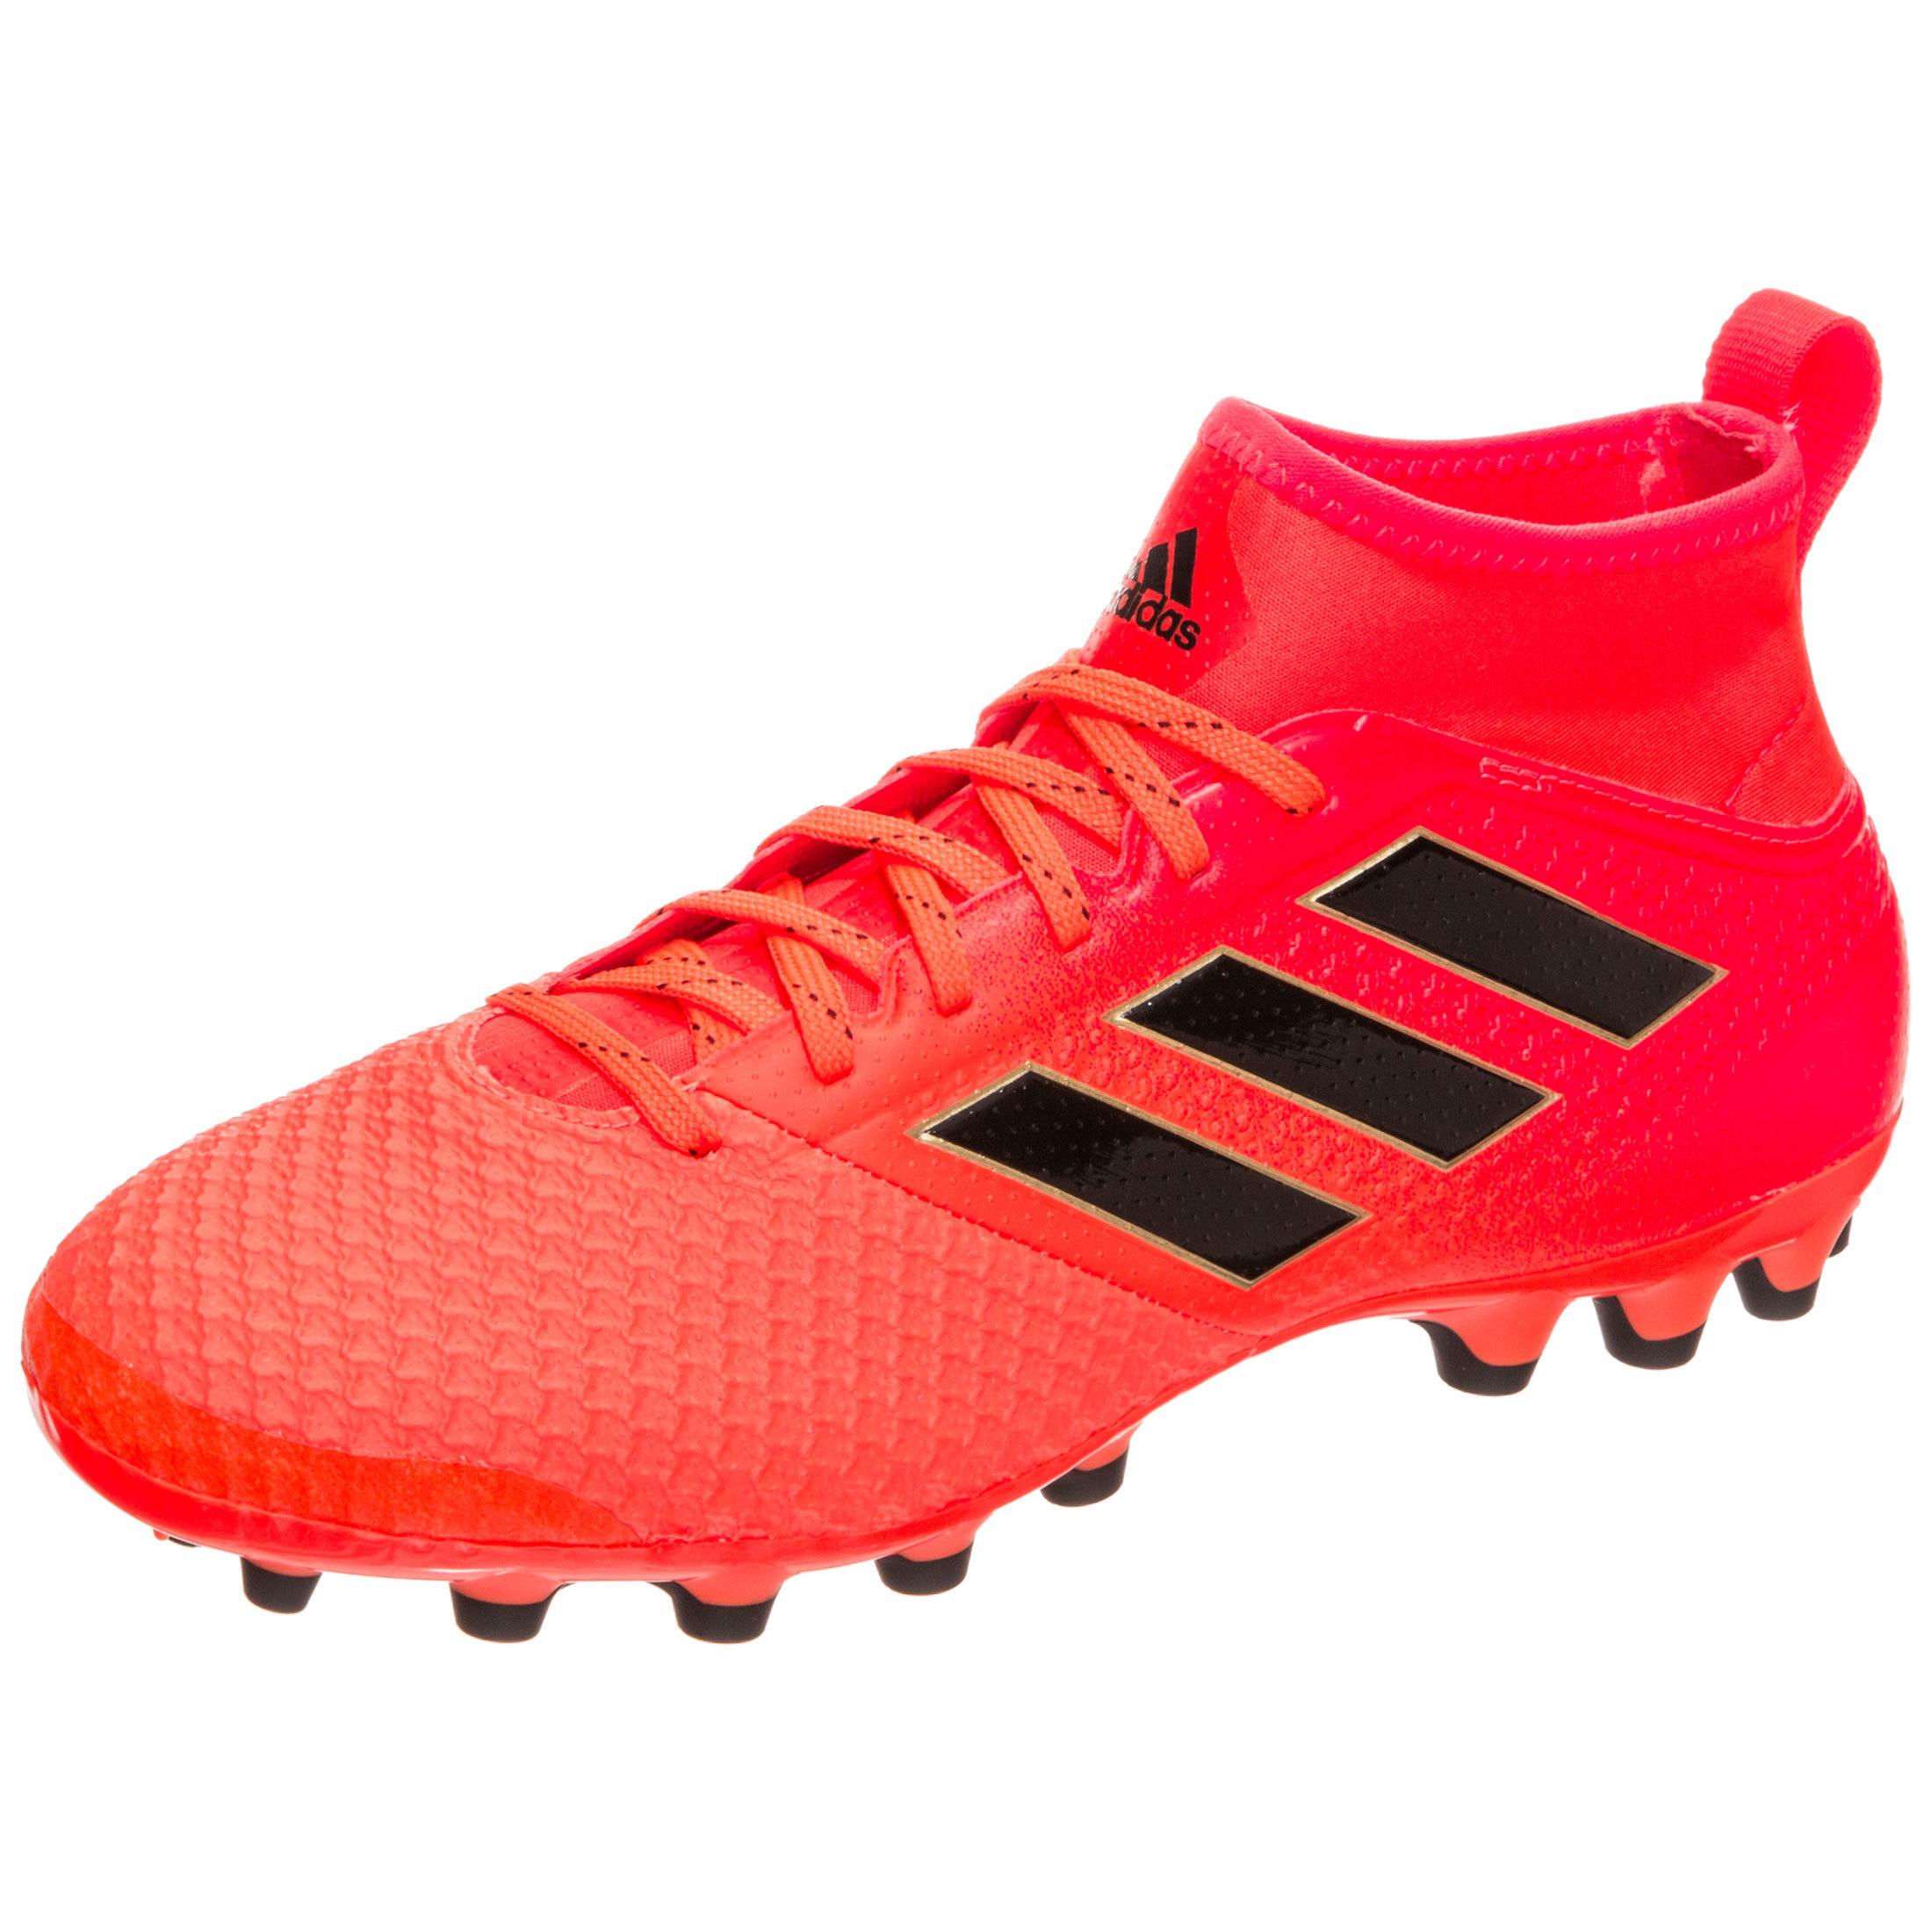 cheap for discount 47946 88d63 adidas ACE 17.3 Primemesh AG Pyro Storm - Solar Orange/Core Black/Solar Red